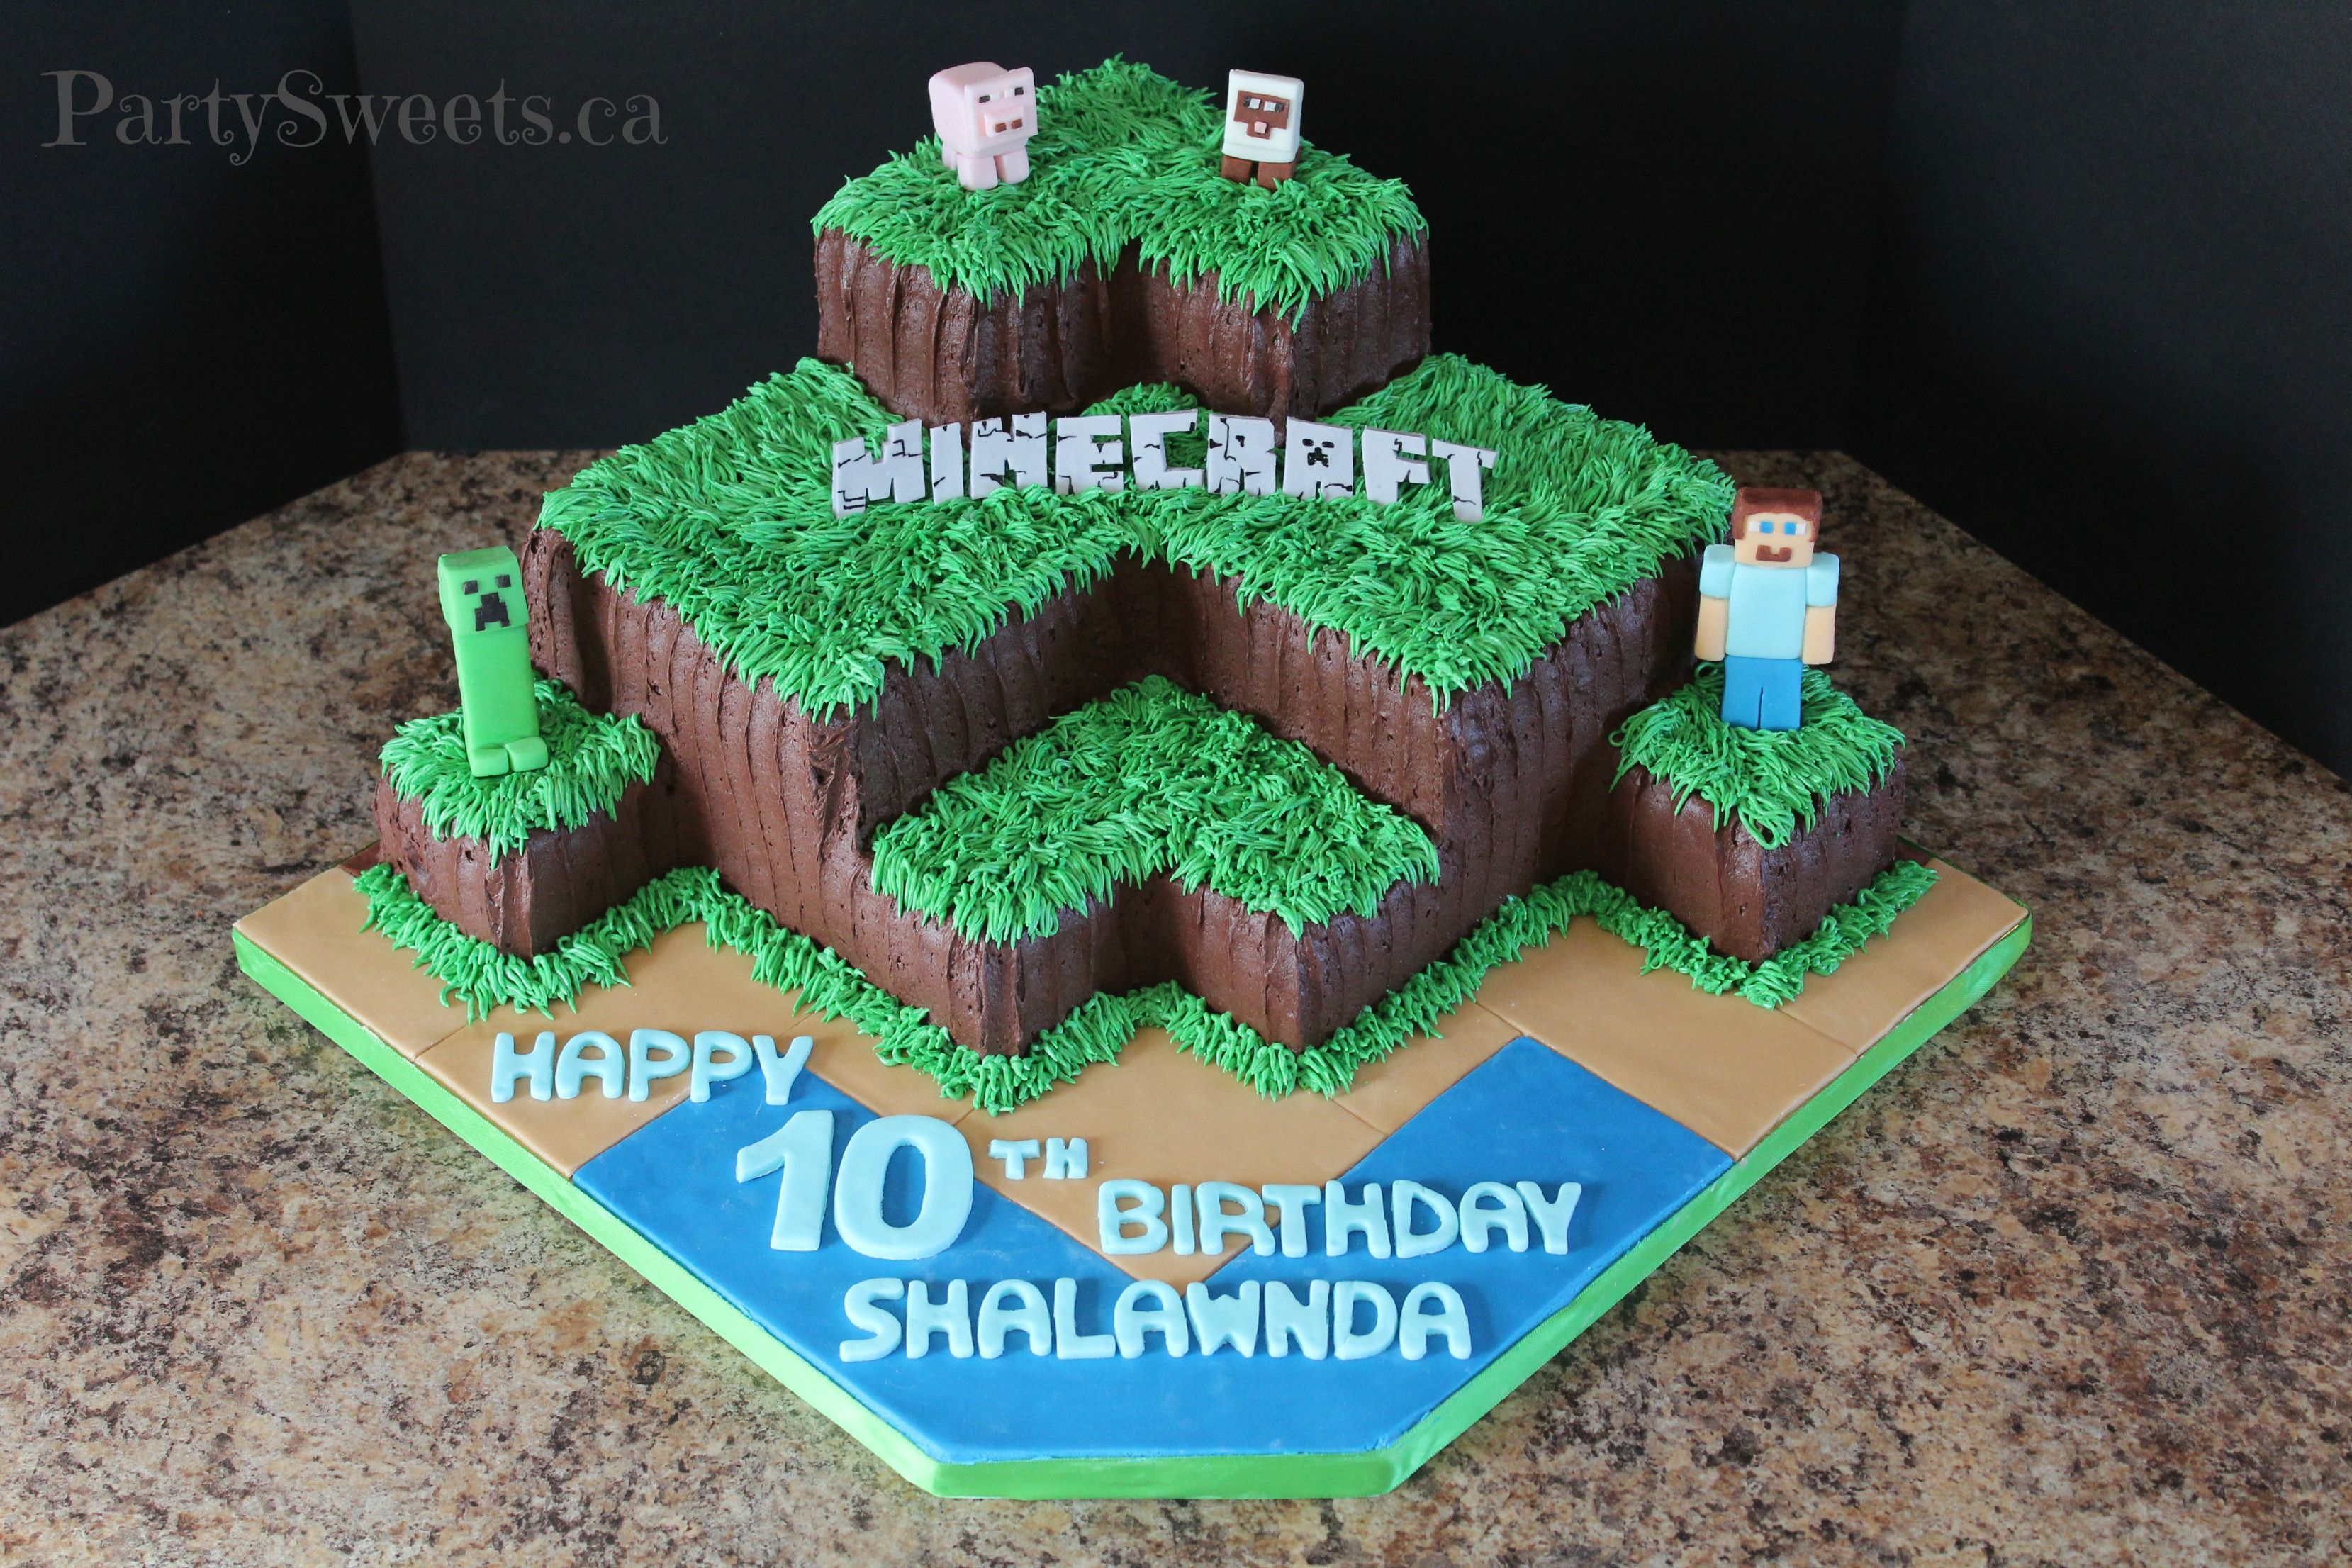 Buttercream Minecraft Party Sweets Cake Decorating Tap